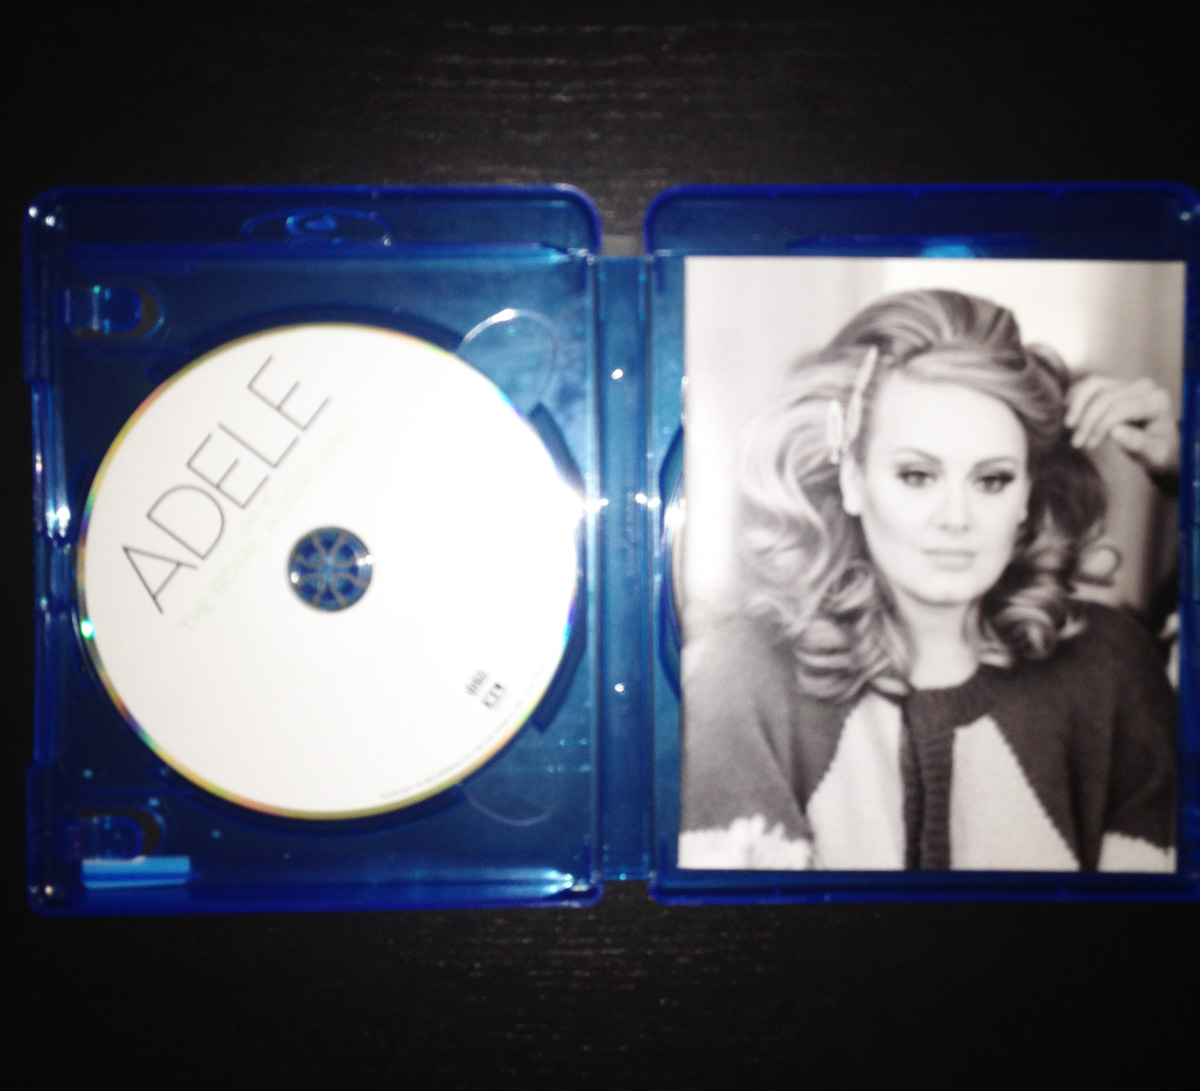 http://4.bp.blogspot.com/-RfKebJXQrzE/TtFZIcygmCI/AAAAAAAACj0/KlqeDMM_9gI/s1600/00-adele-live_at_the_royal_albert_hall-proof-2011.jpg